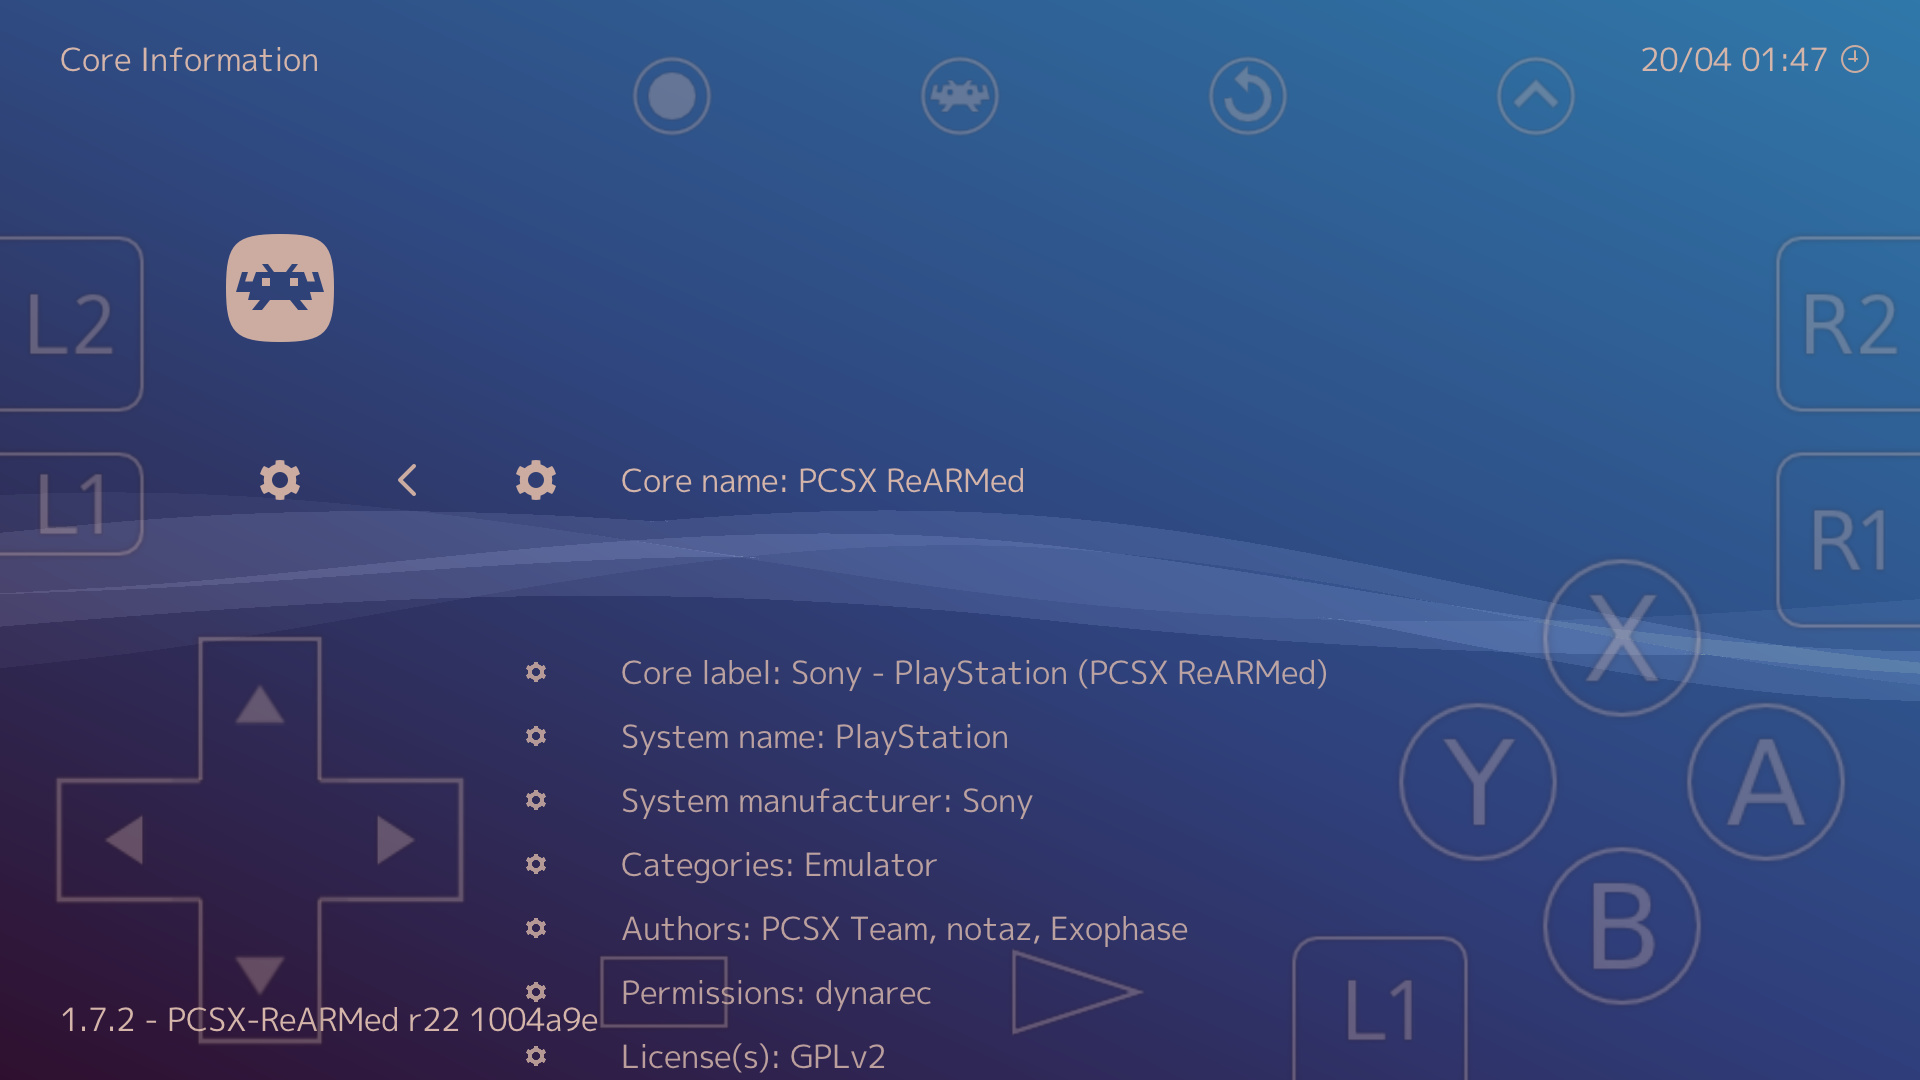 PBP files no longer working on pcsx rearmed core for Android